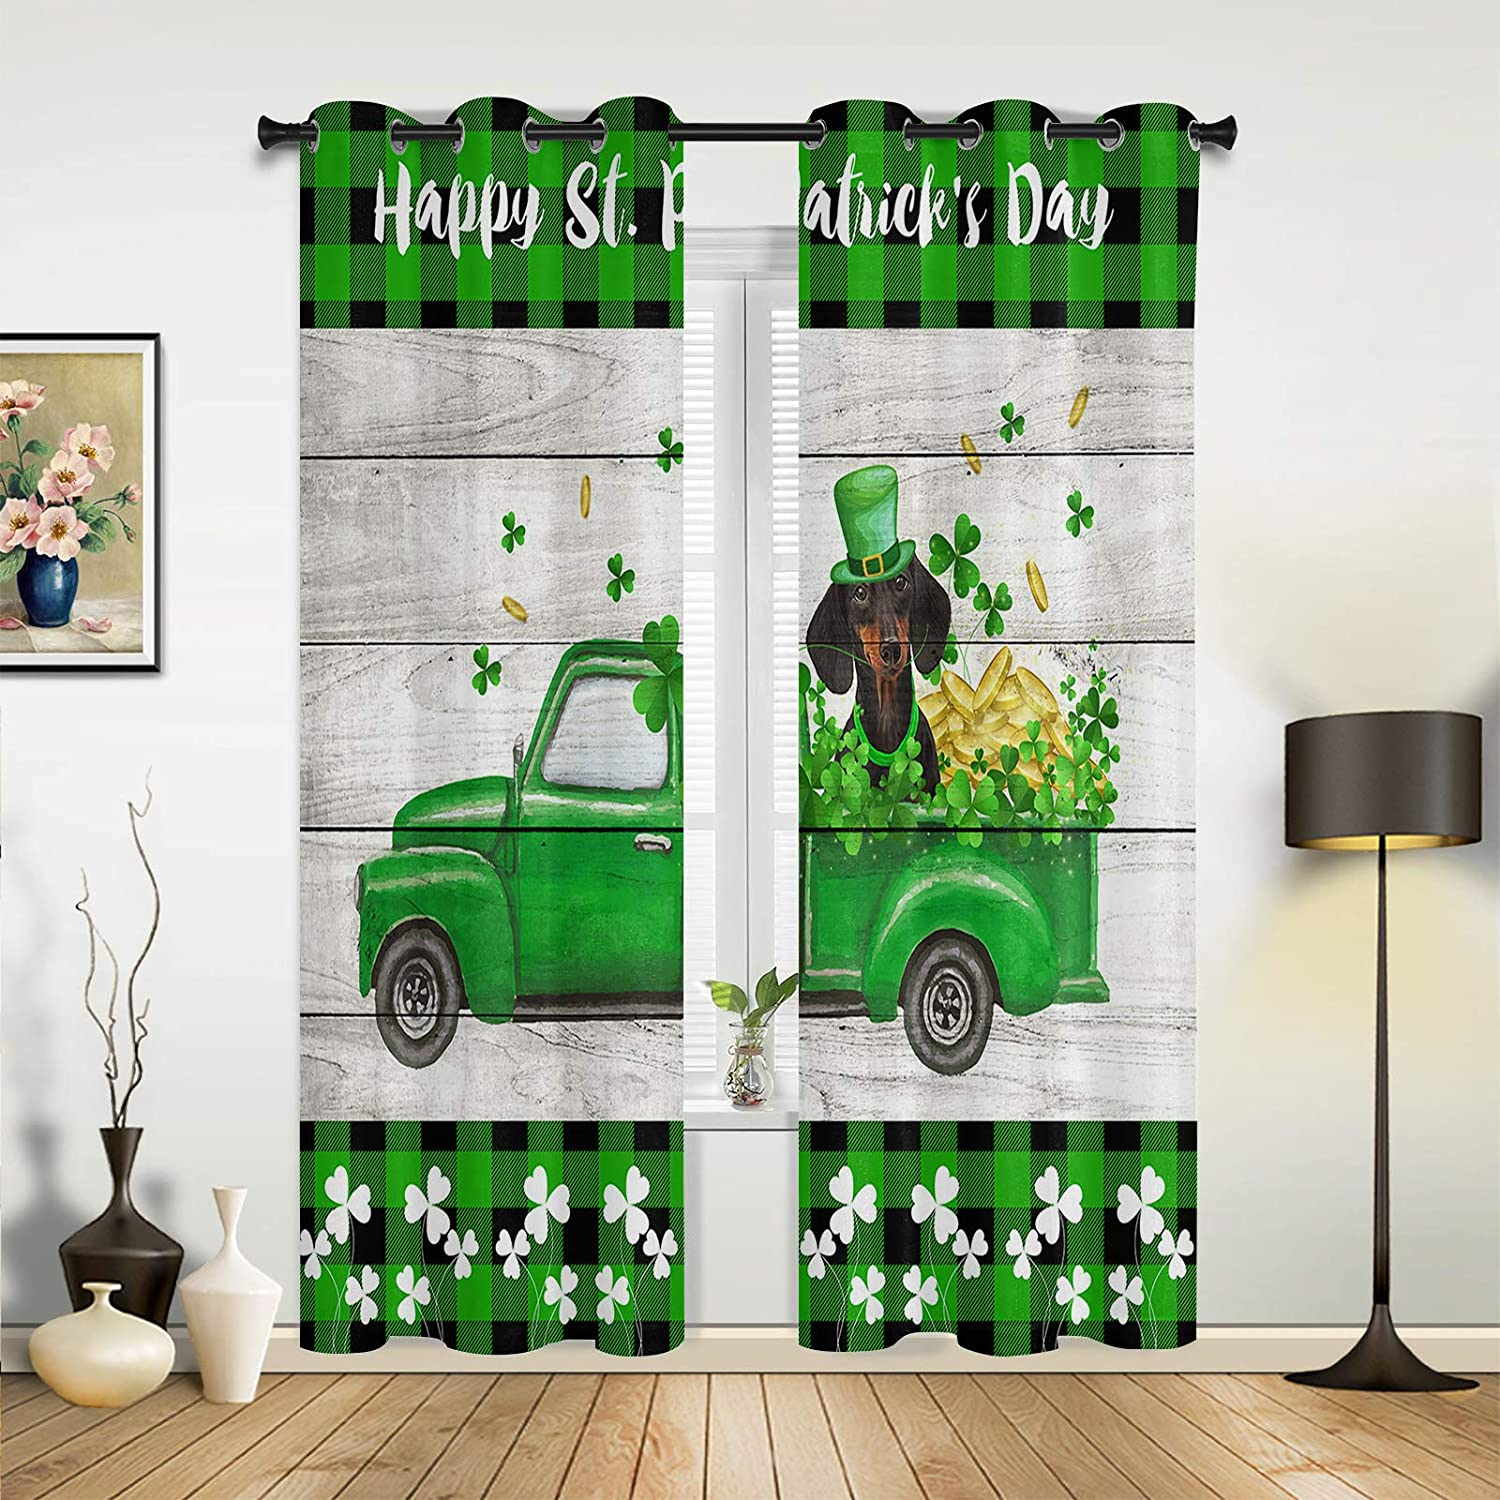 Beauty Decor Window cheap Sheer Curtains for Bedroom Room Happy Living Max 80% OFF